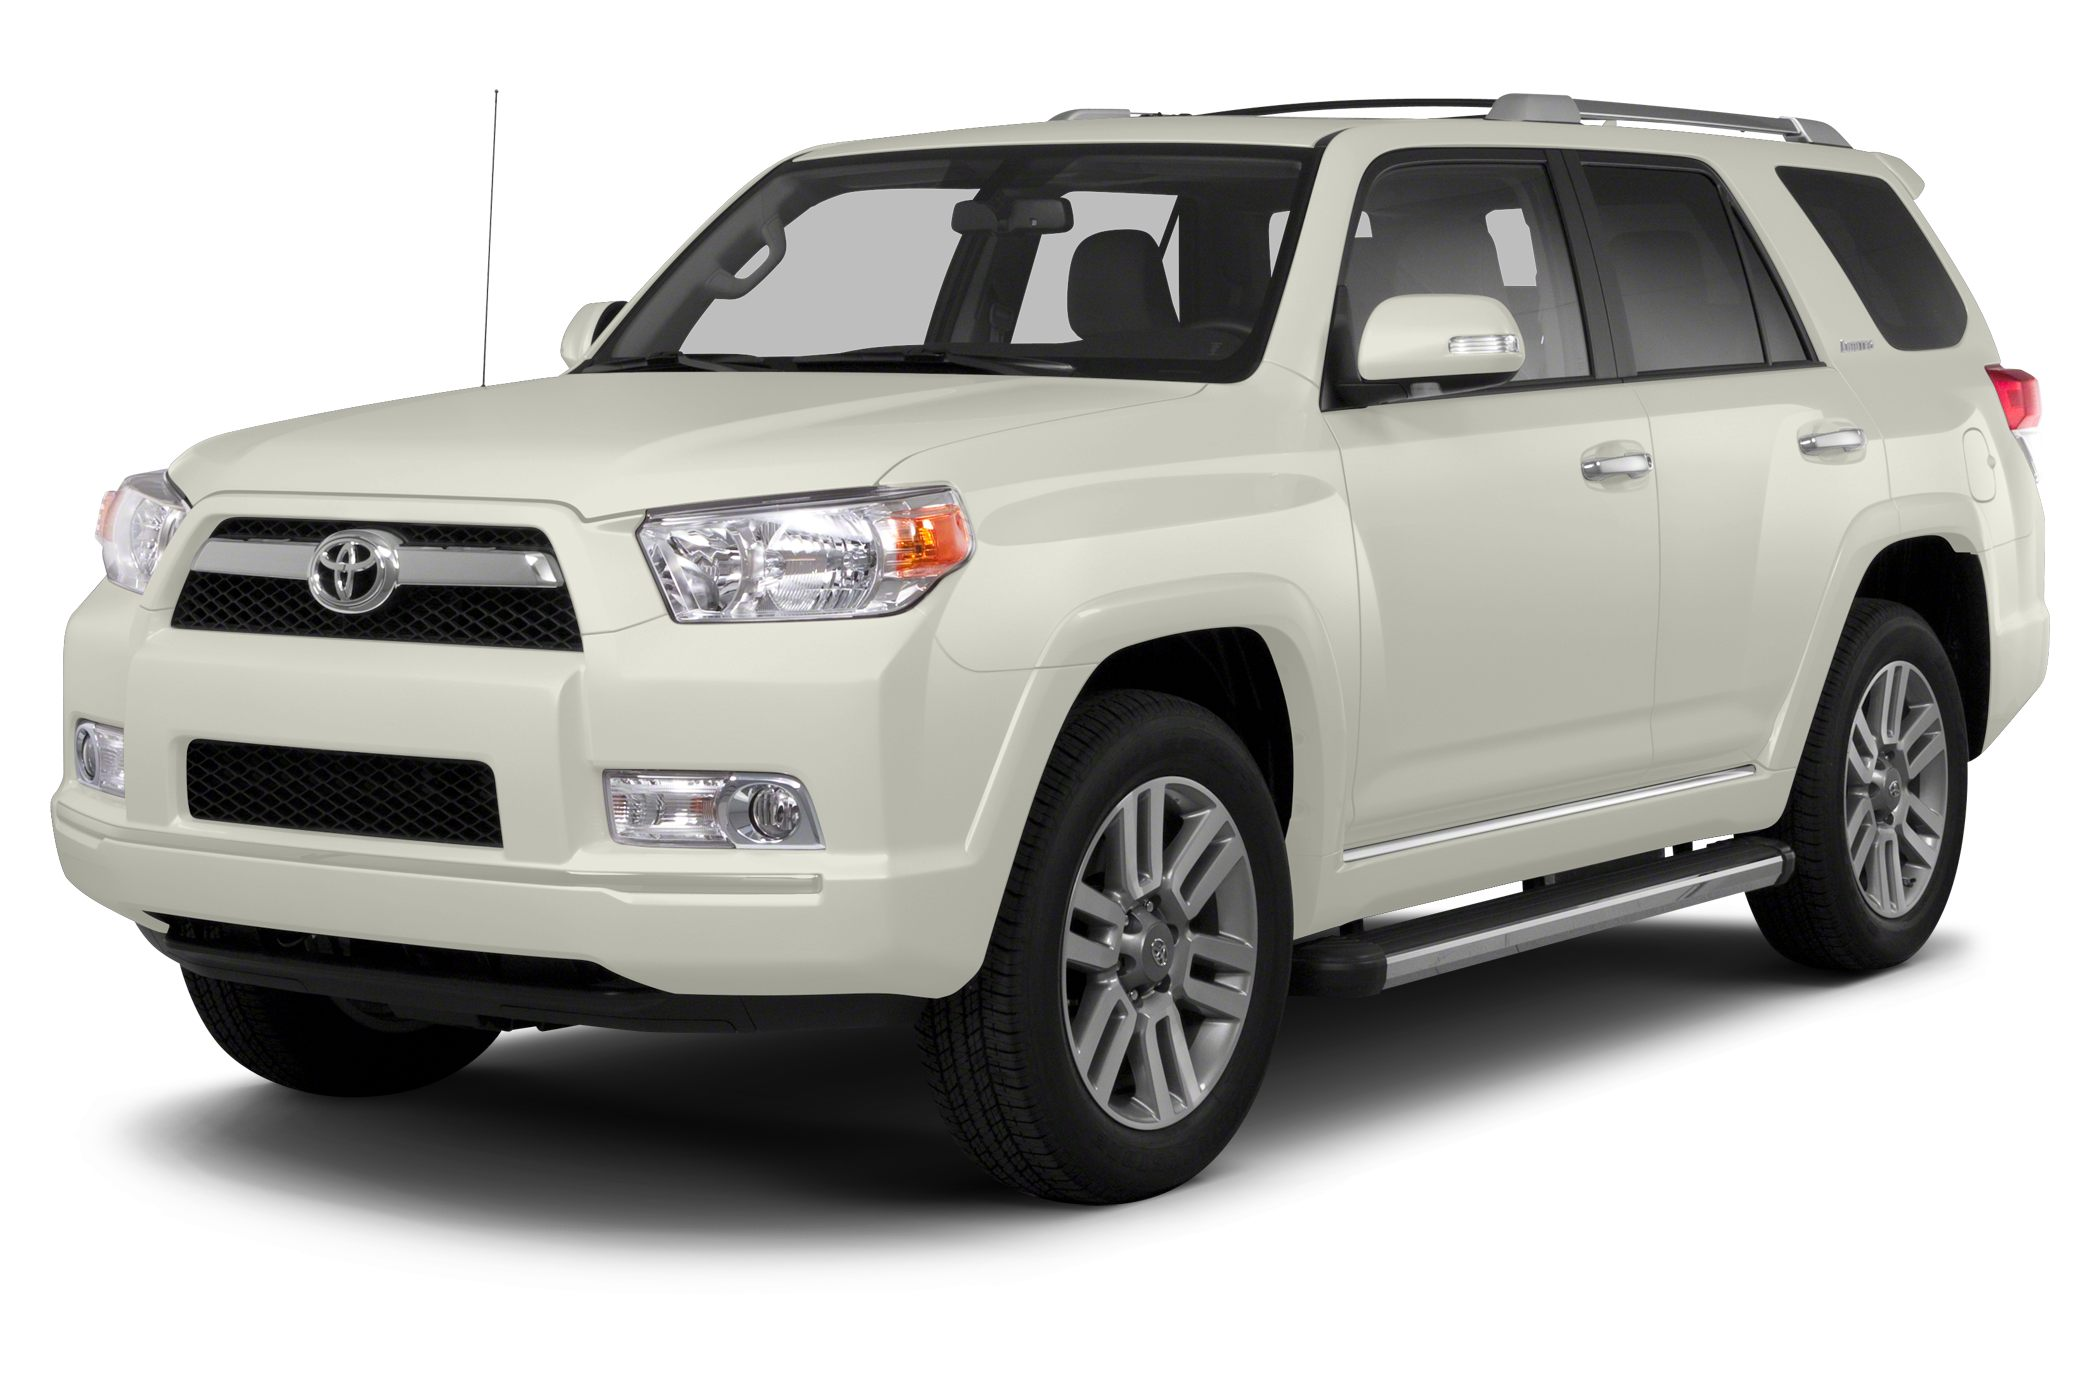 2013 Toyota 4Runner SR5 SUV for sale in Santa Fe for $32,994 with 32,247 miles